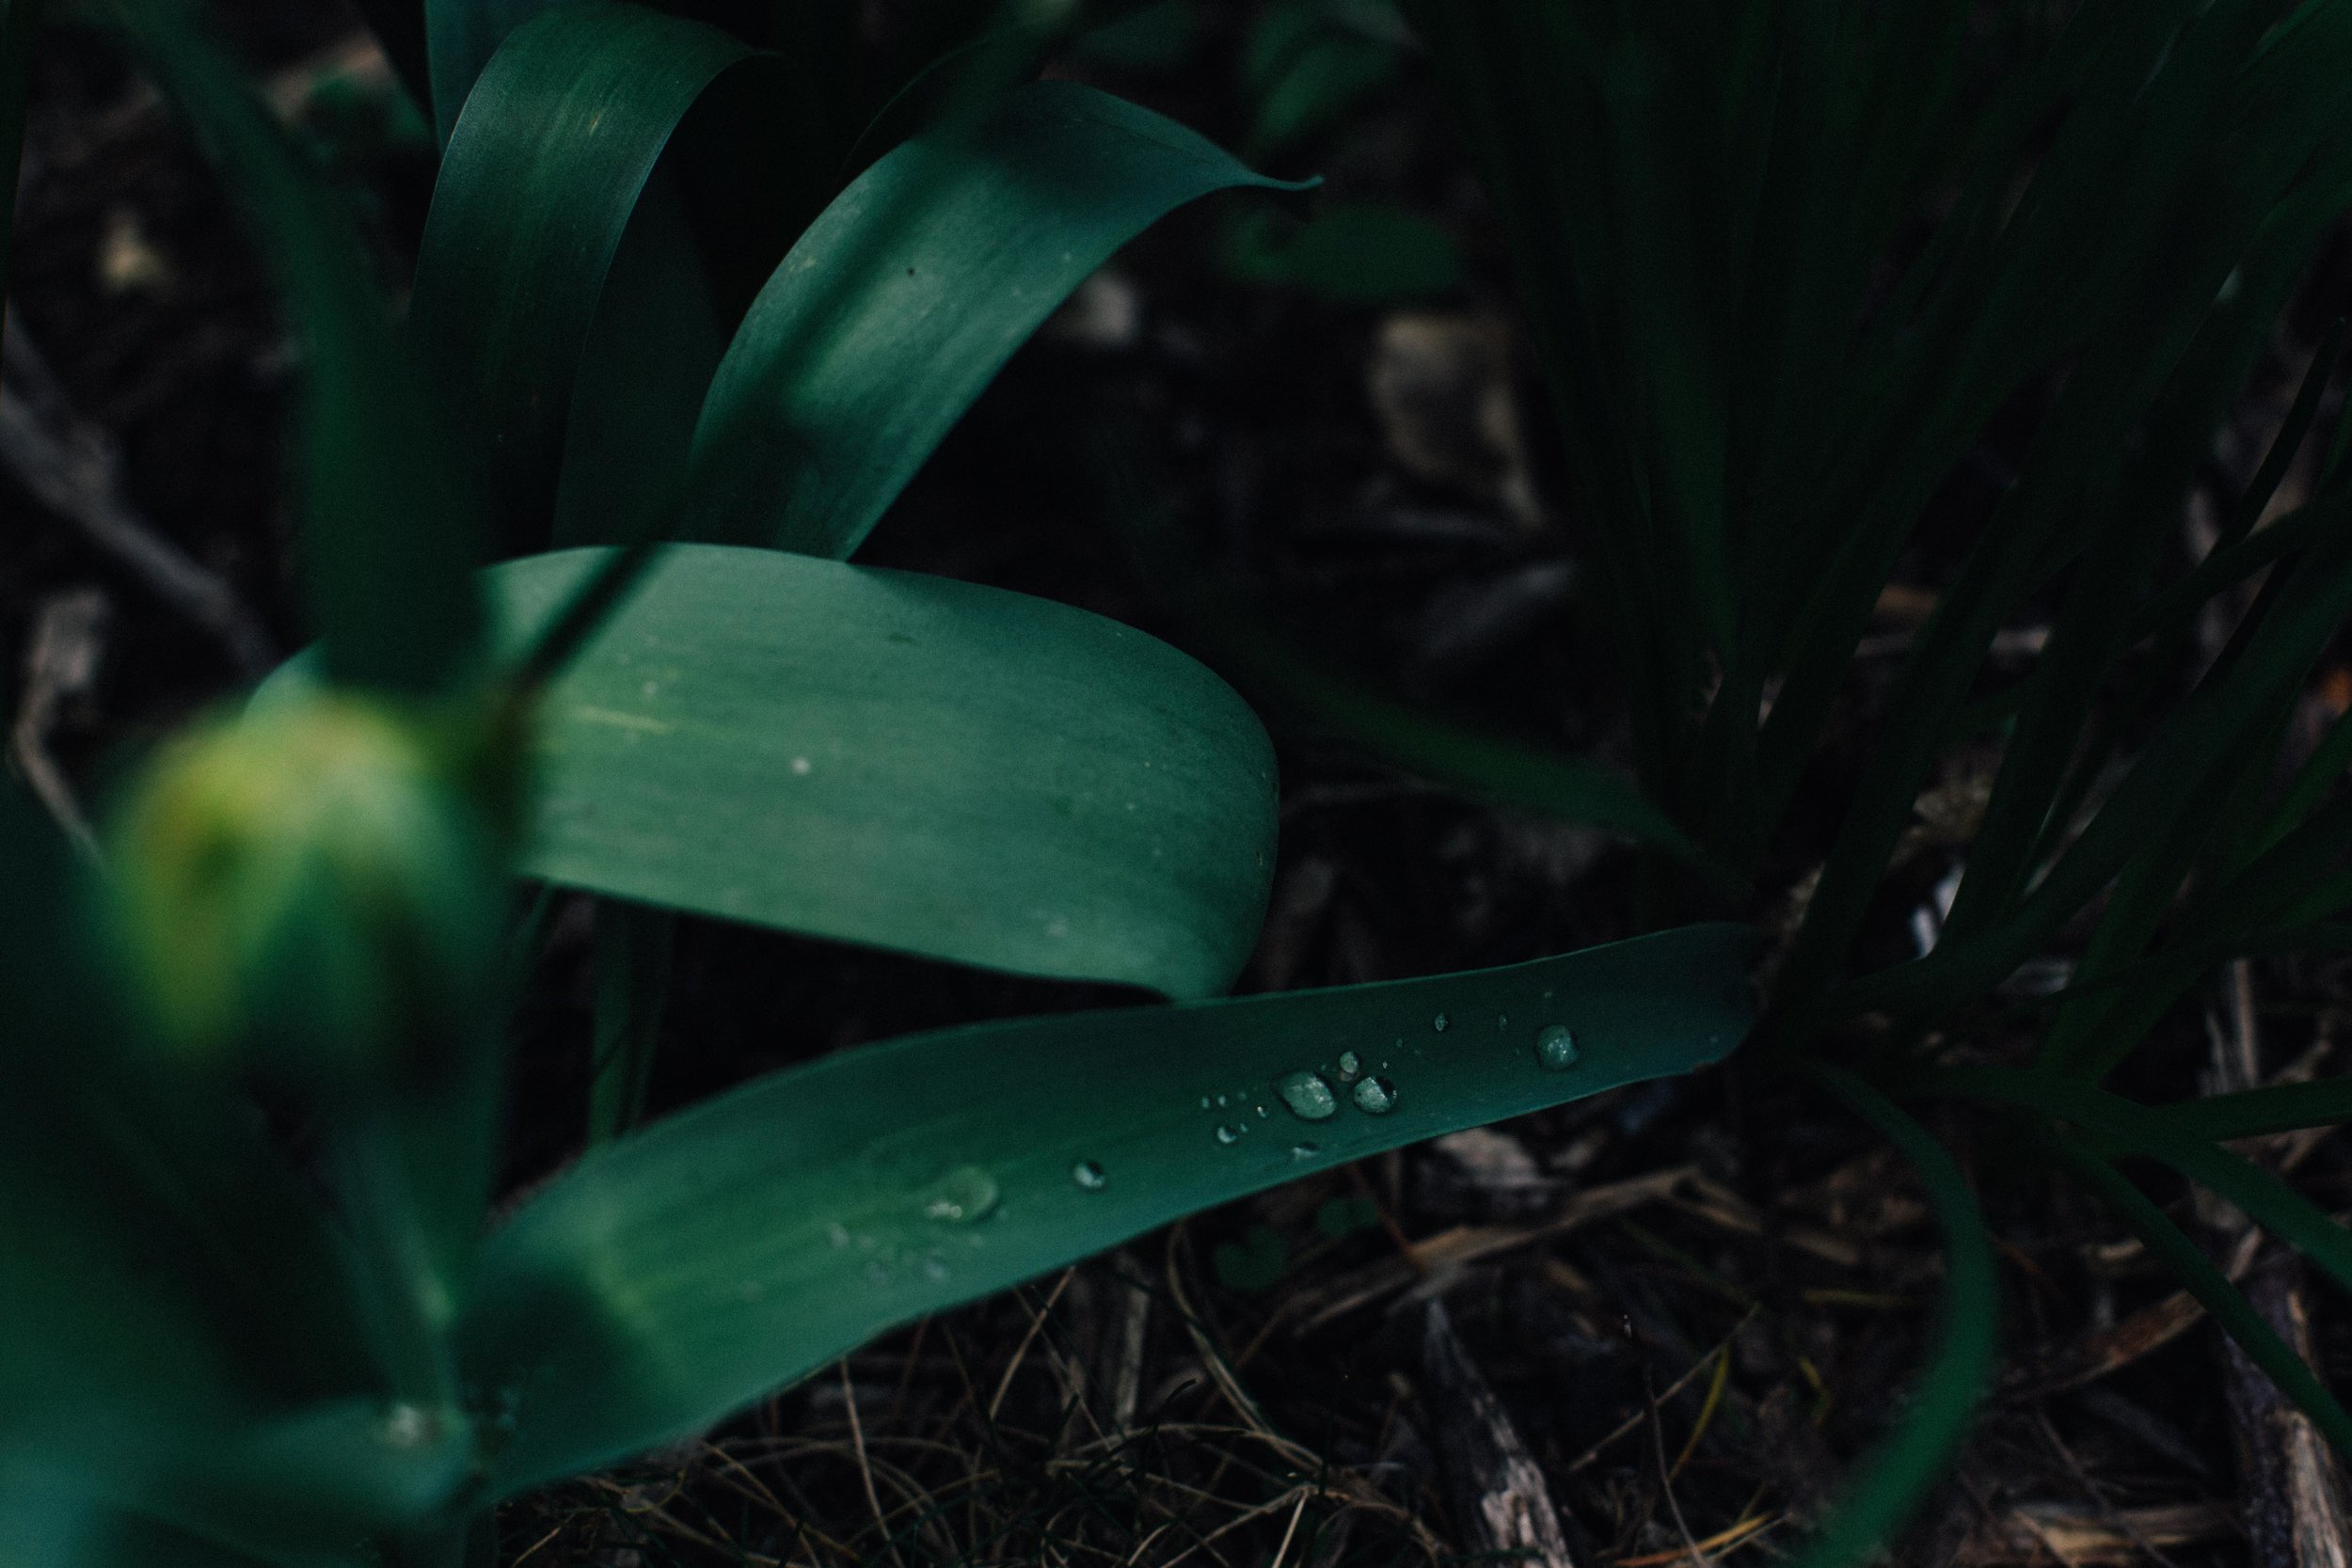 Details of water drops on plant